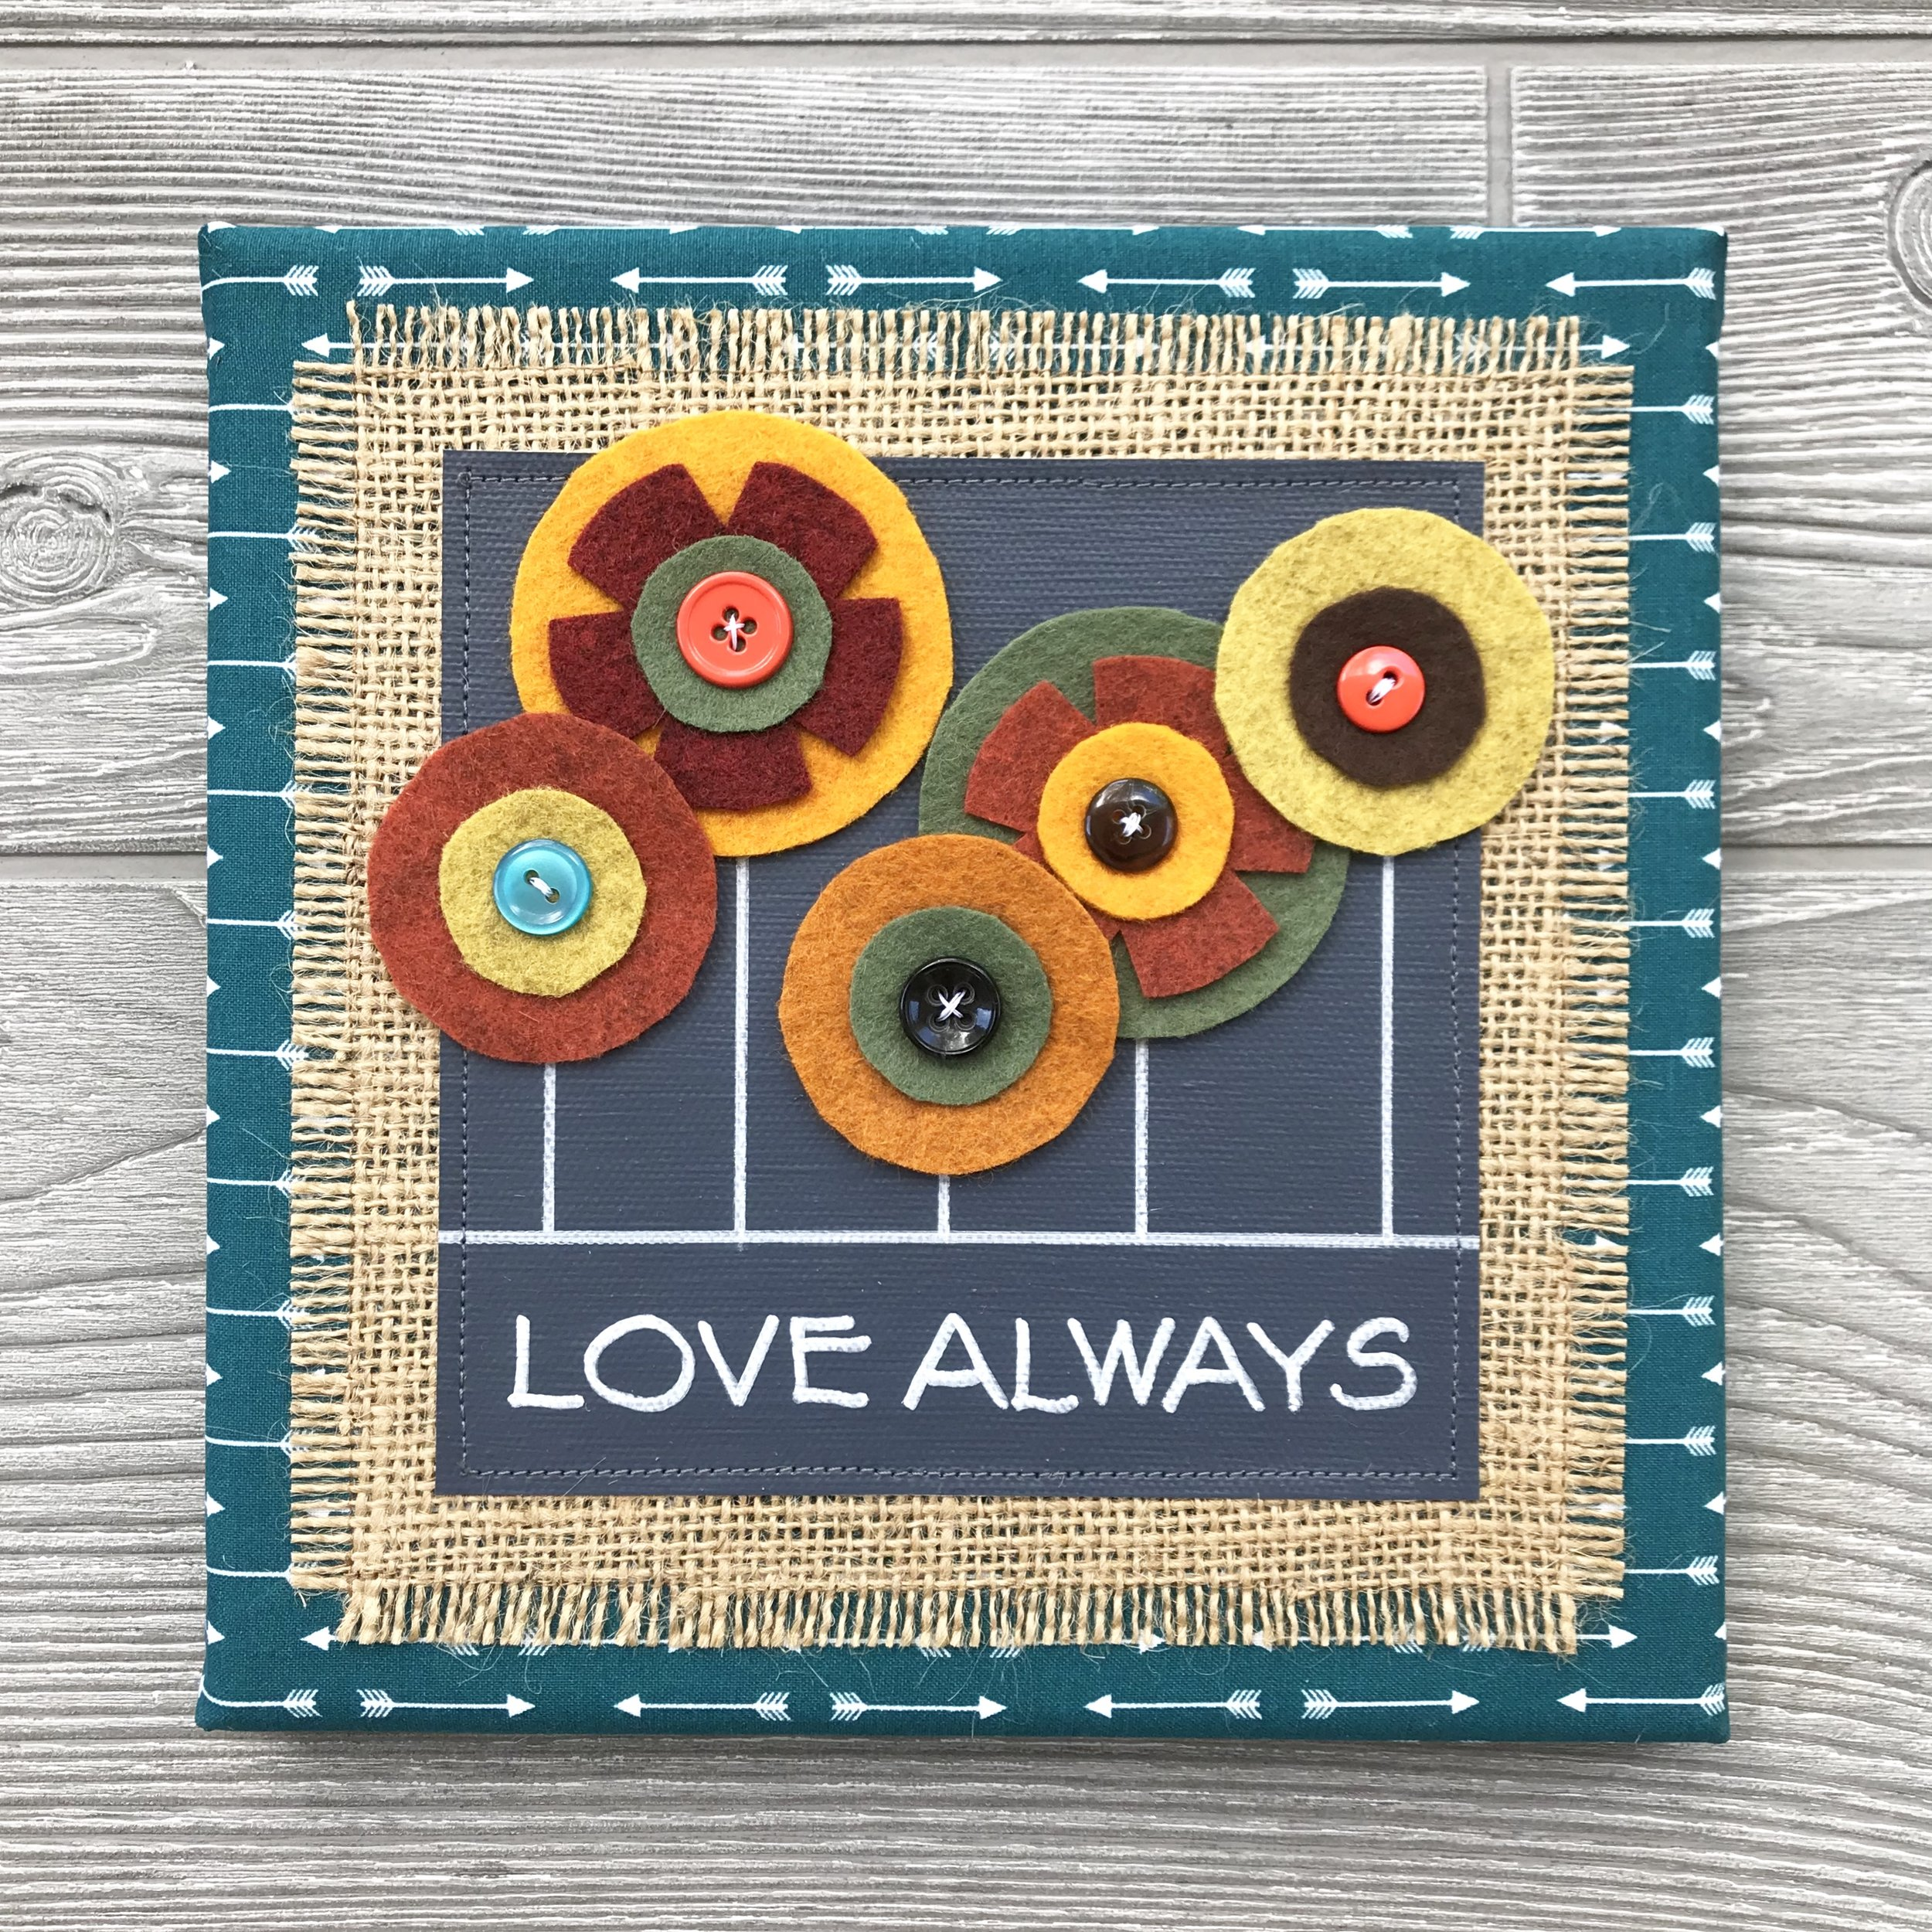 "Love Always - Every piece in our floral collection is handmade with love and one of a kind. We combine hand-lettered canvas and hand-cut felt flowers with colorful fabric, burlap and buttons. This unique artwork is sure to brighten your home and your mood!8""x8"" Handmade Literary ArtworkElements: hand-painted and hand-lettered canvas, colorful burlap, ultra-soft felt, patterned fabric, coordinating buttons, wood frame, claw hangerPrice: $25 (includes US-based shipping)"